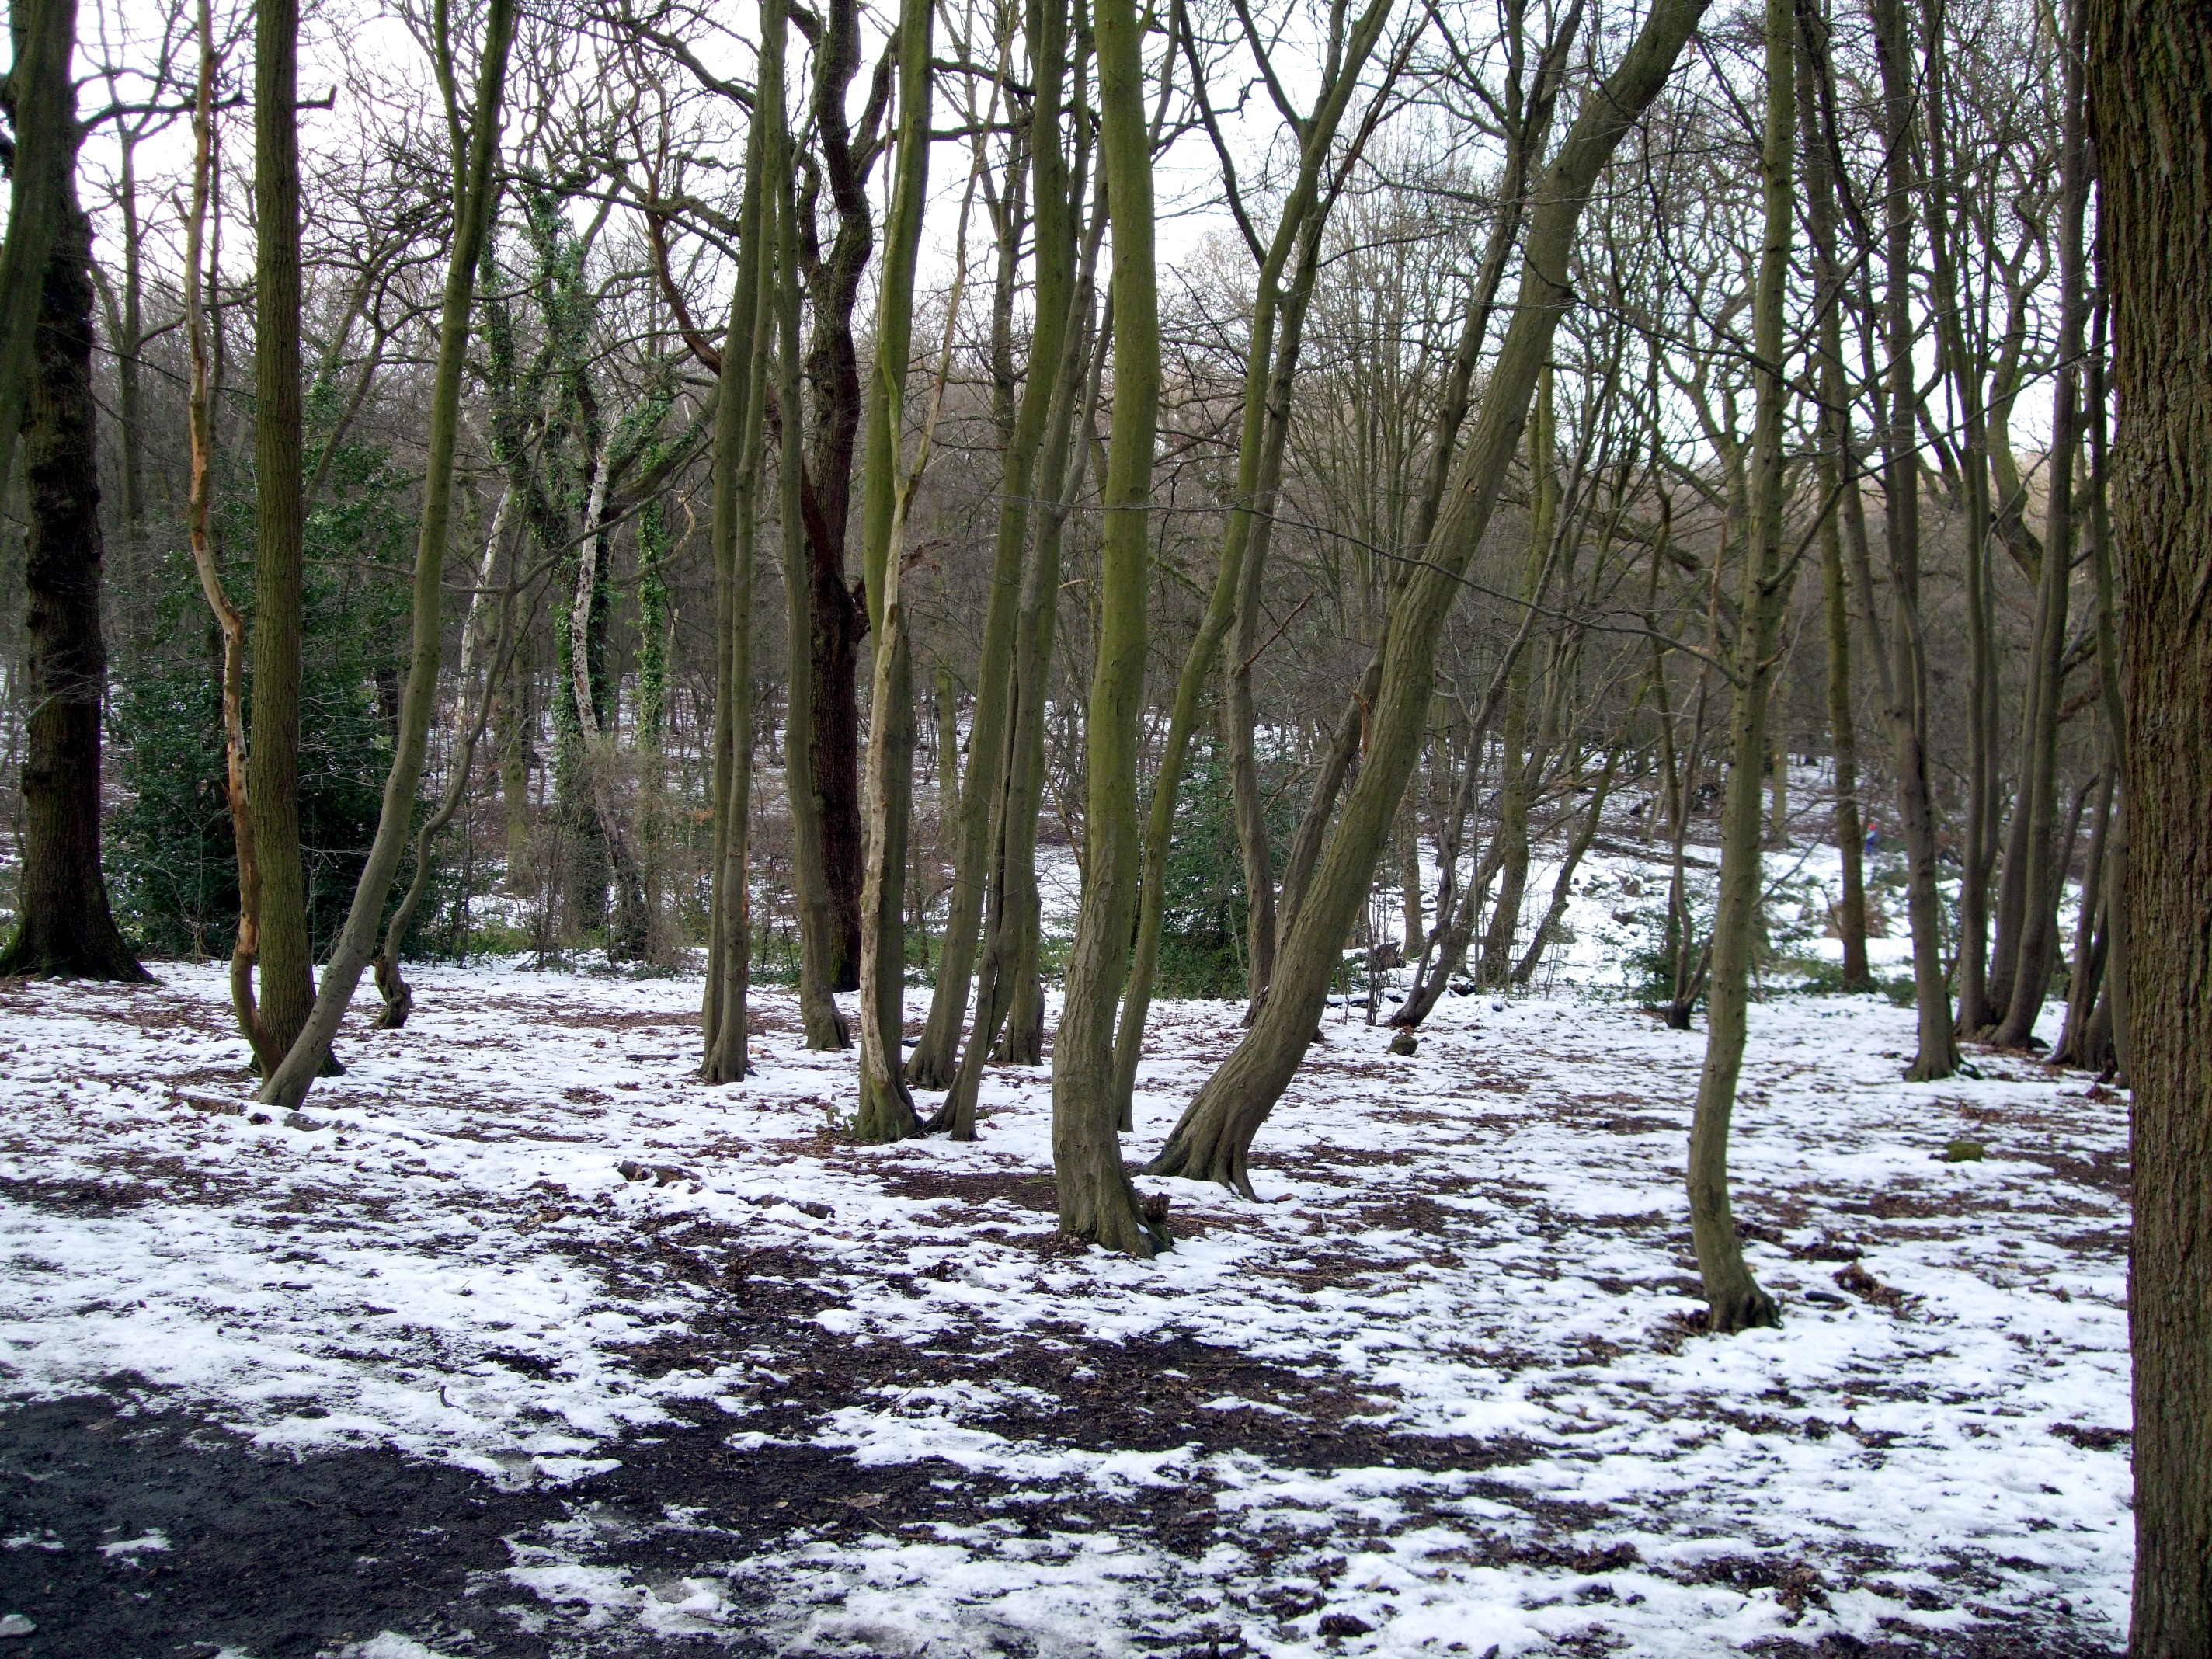 Coldfall Wood picture via Ewan Munro (Wikimedia)